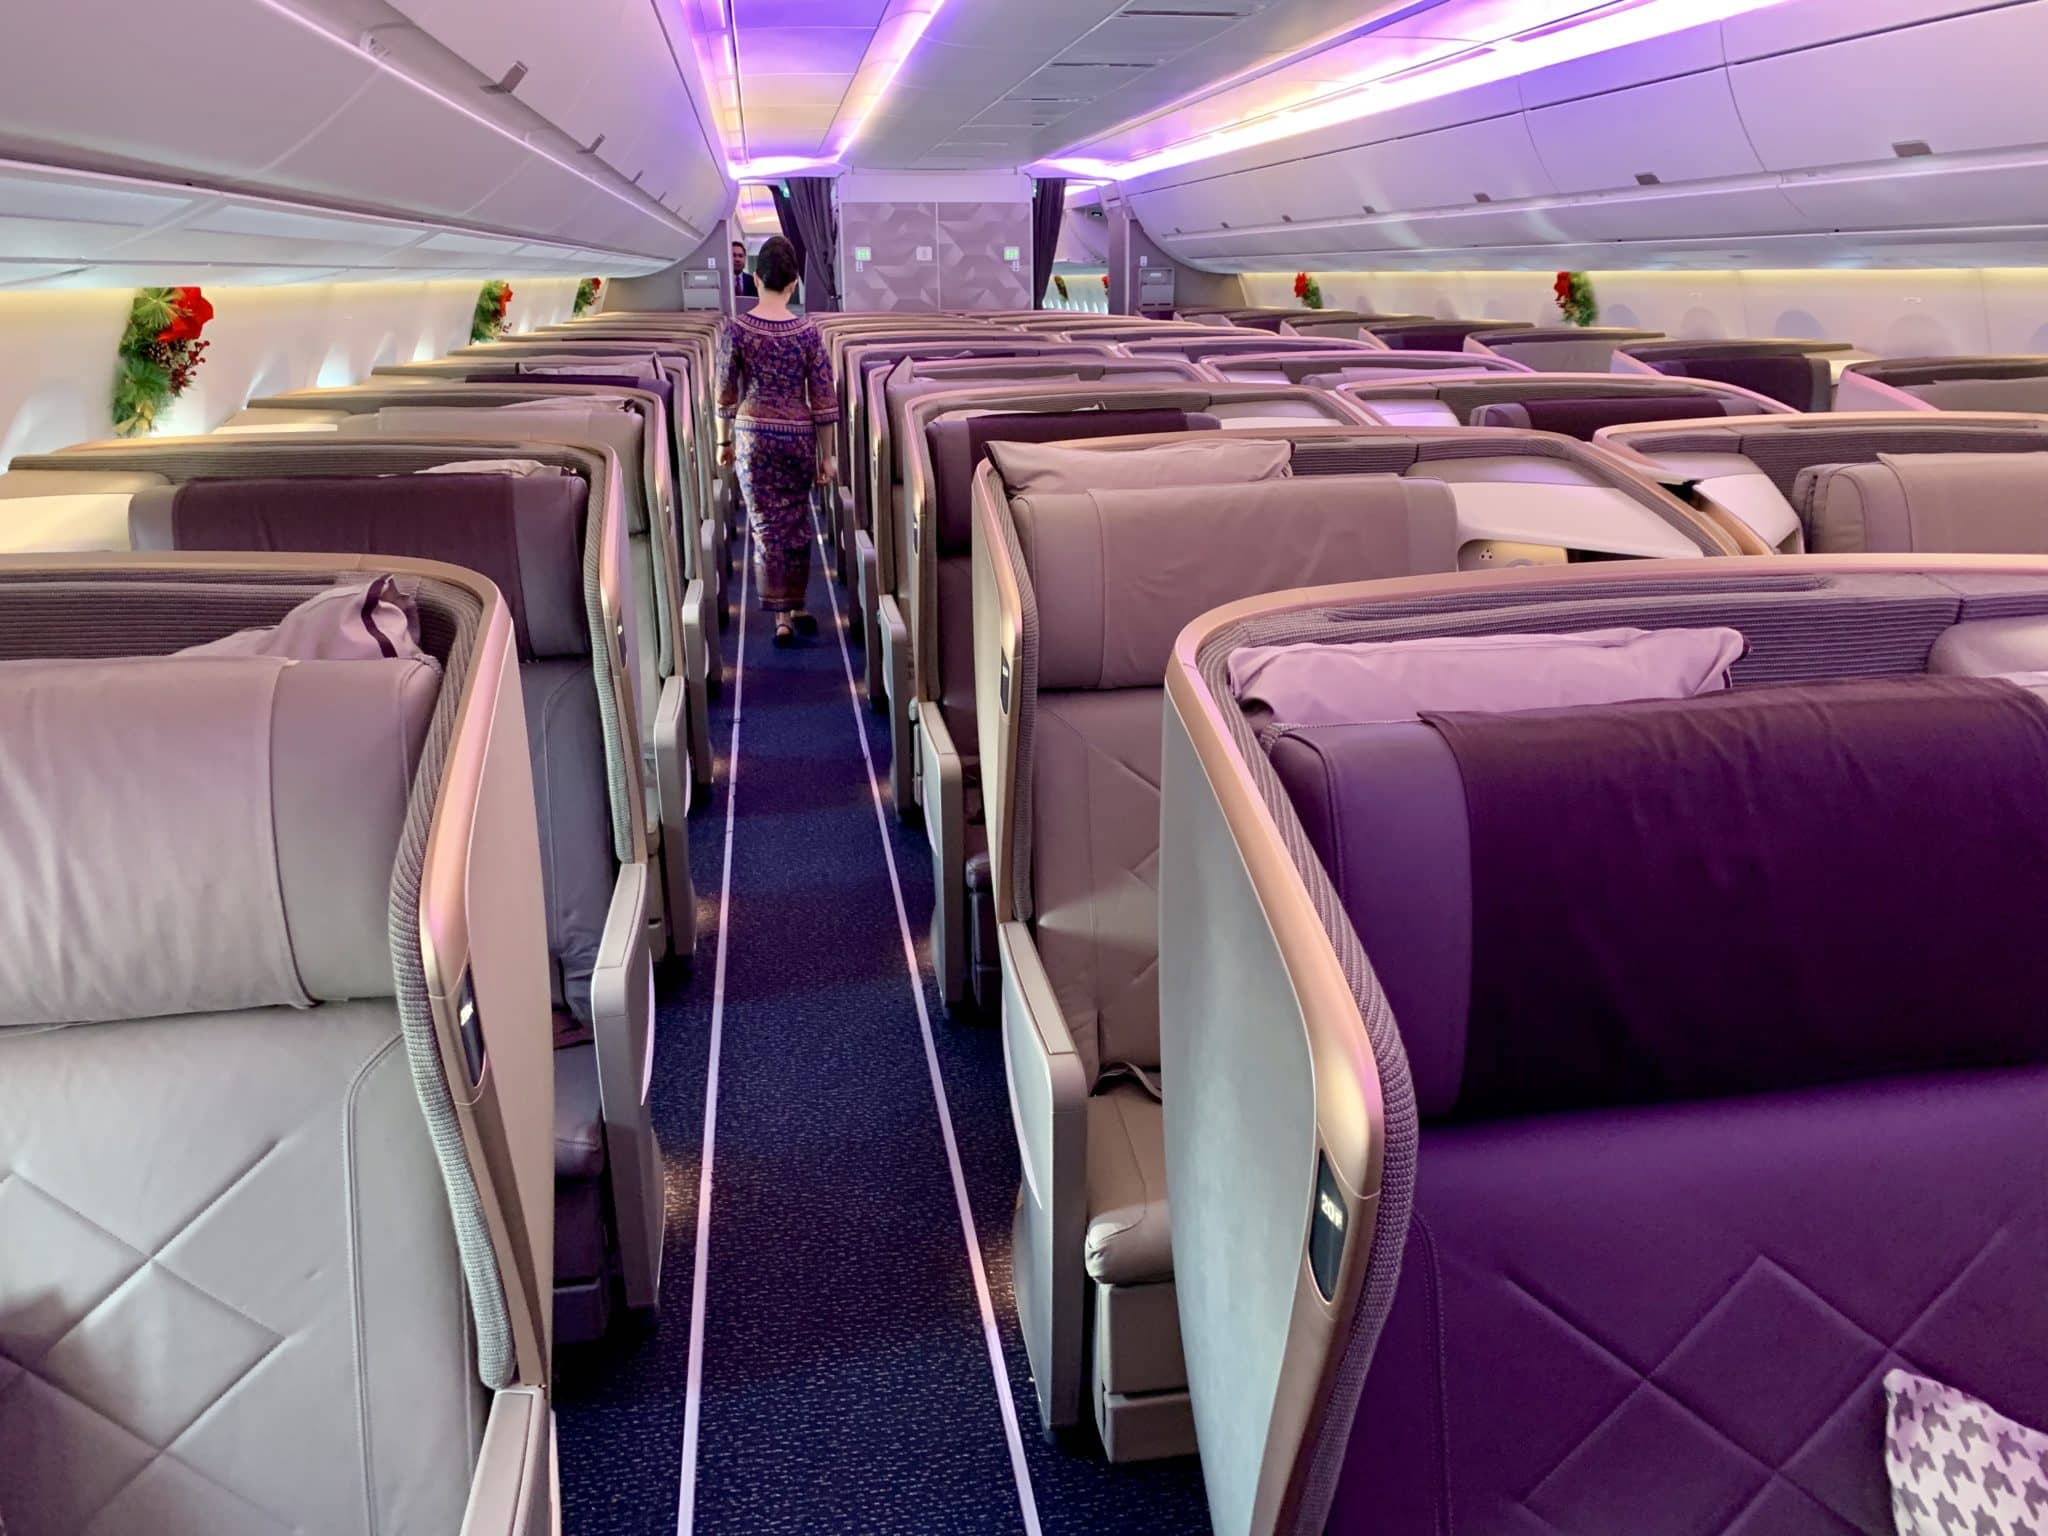 Hintere Singapore Airlines Business Class Kabine im A350-900ULR